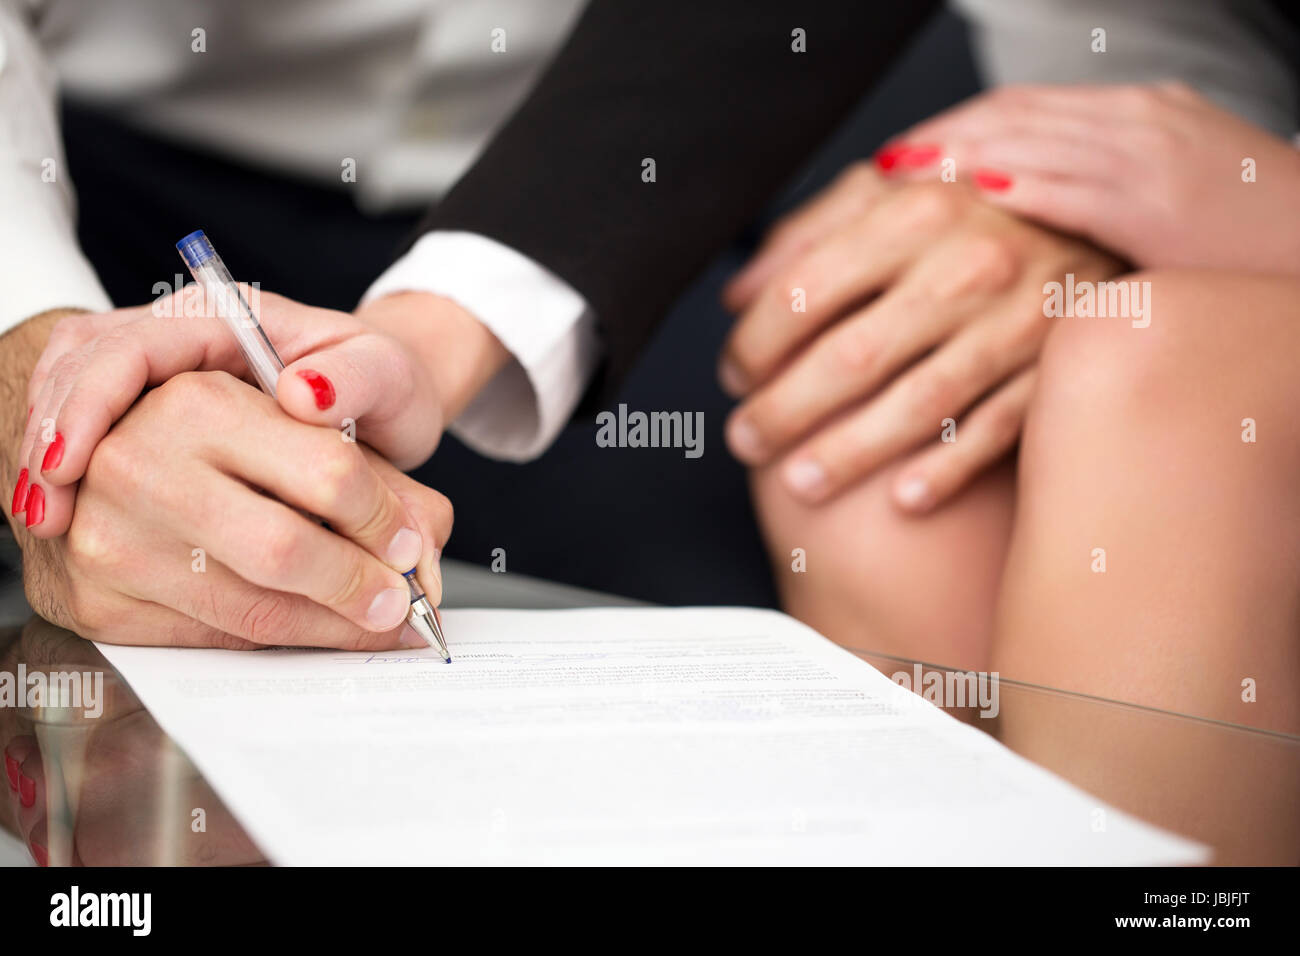 Man singning marriage settlement, prenuptial agreement, rich woman pulling into it Stock Photo